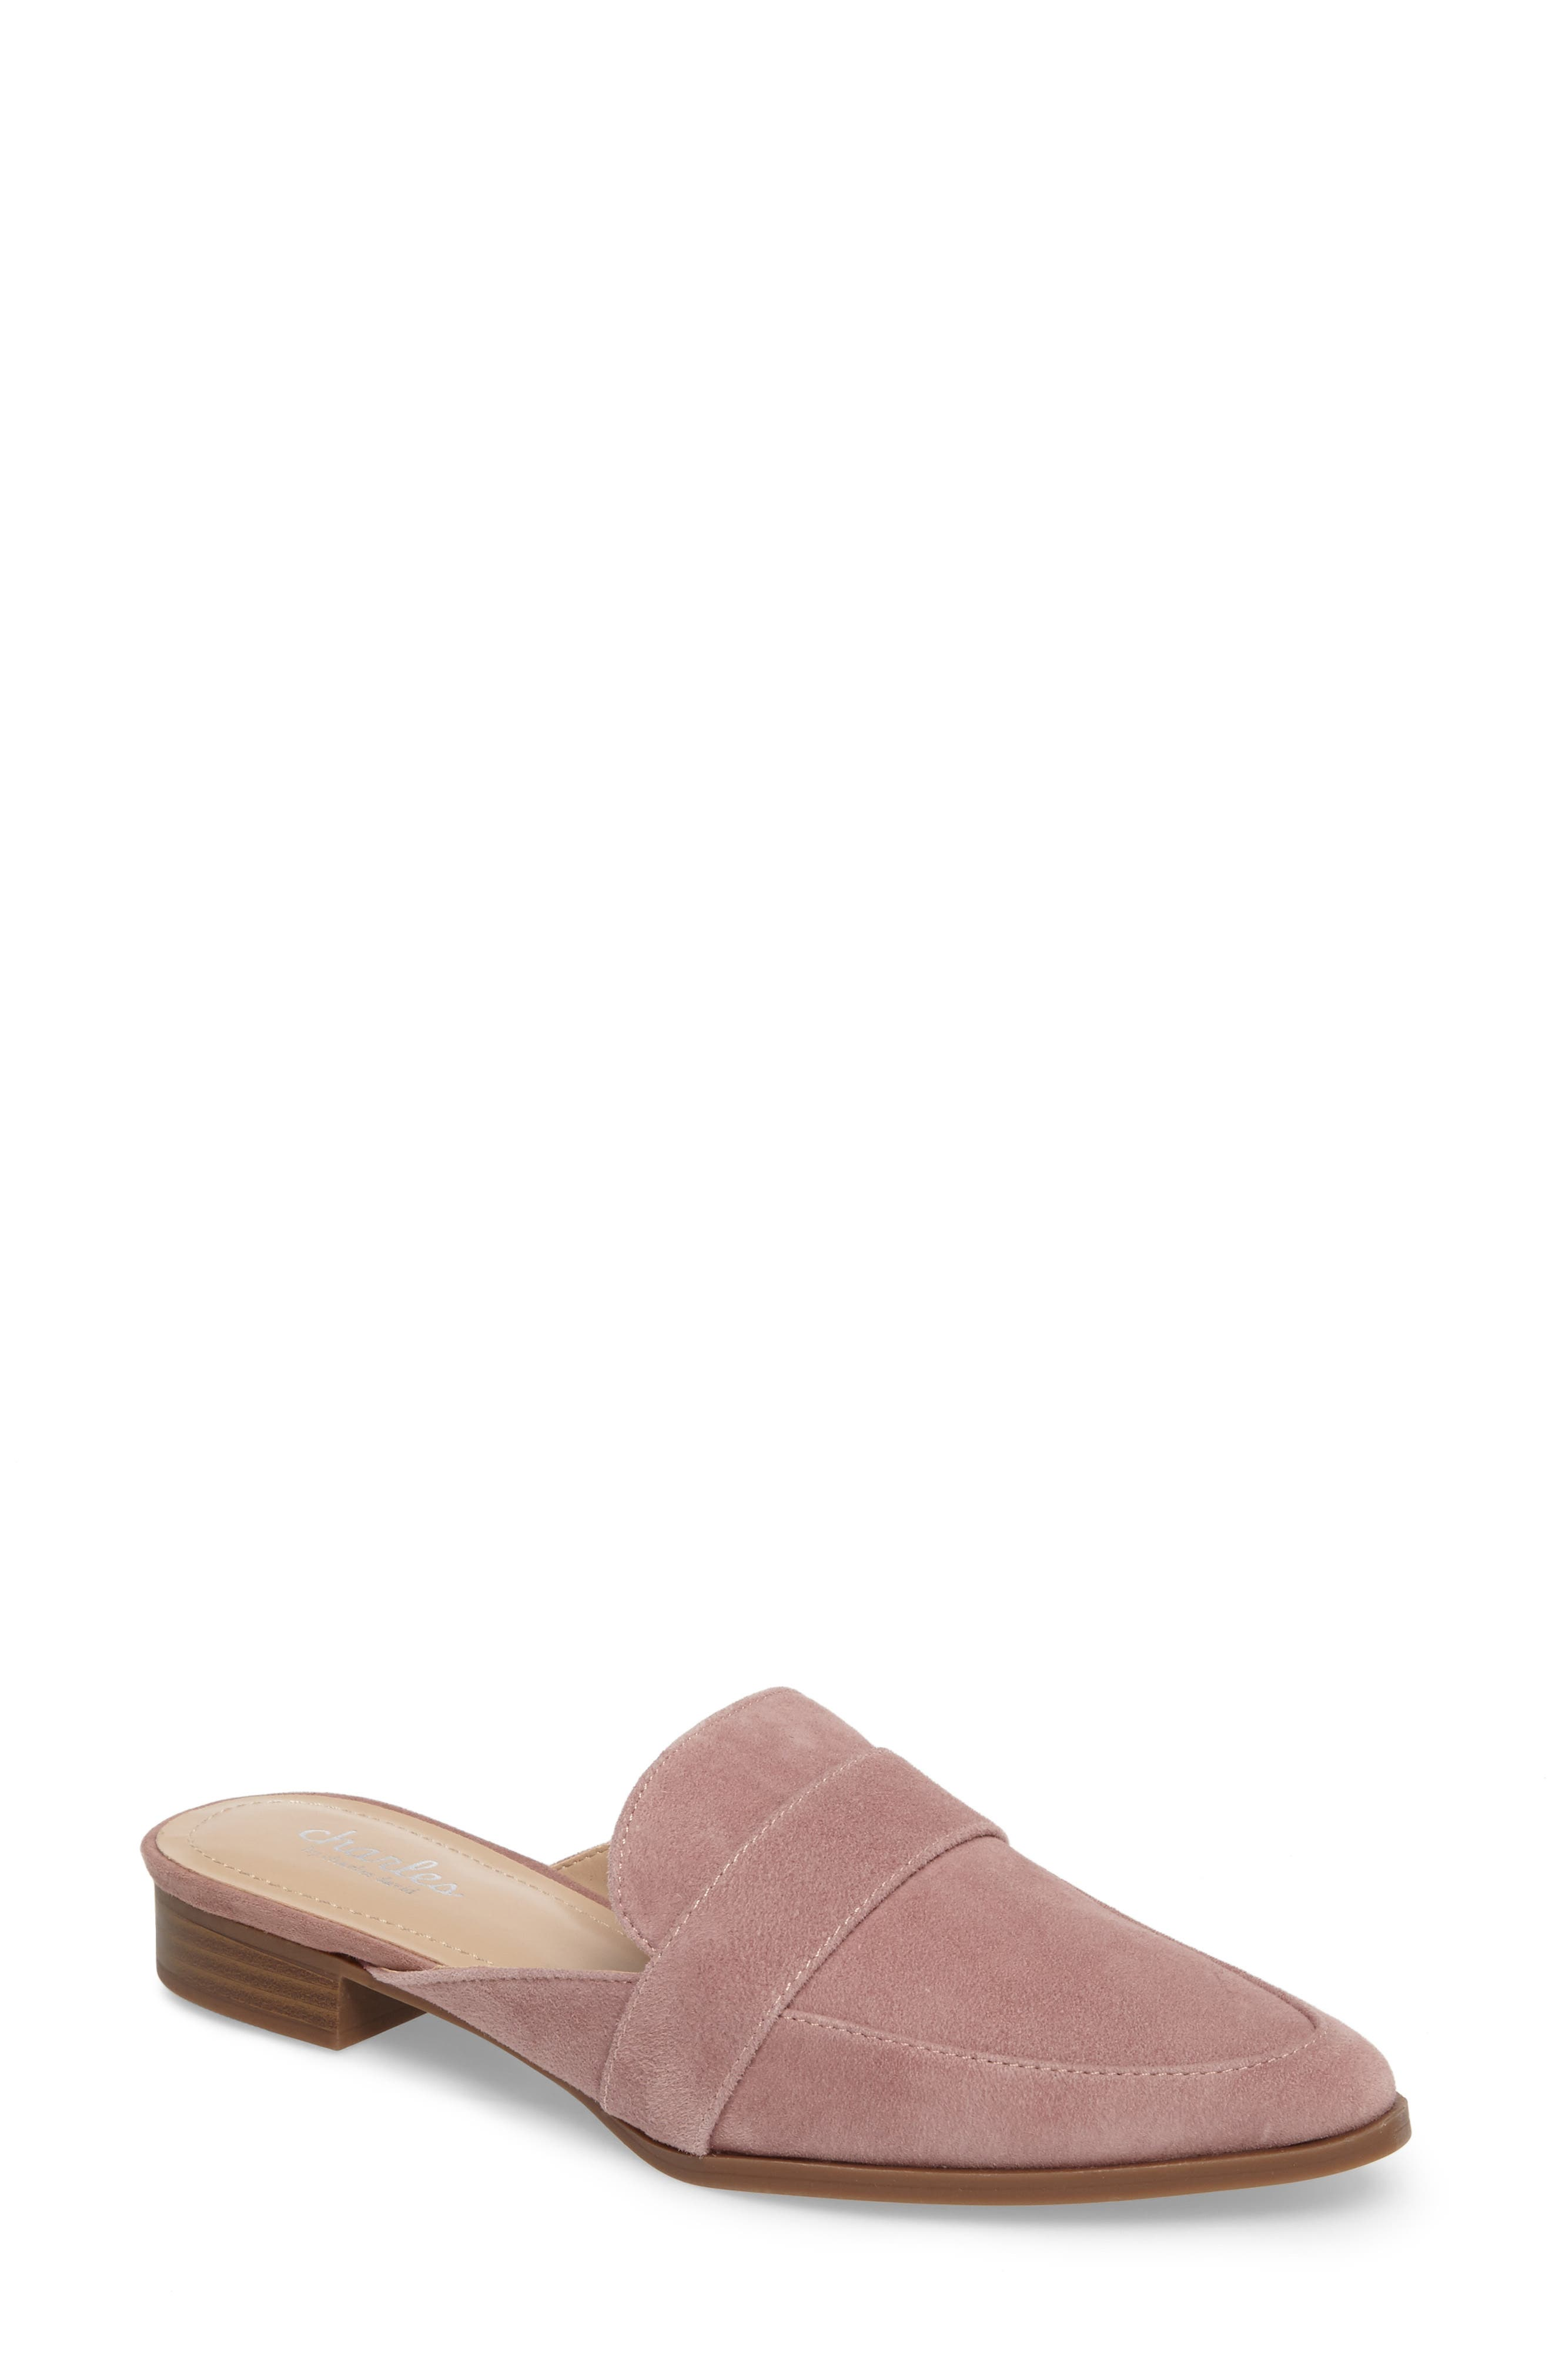 Alternate Image 1 Selected - Charles by Charles David Emma Loafer Mule (Women)